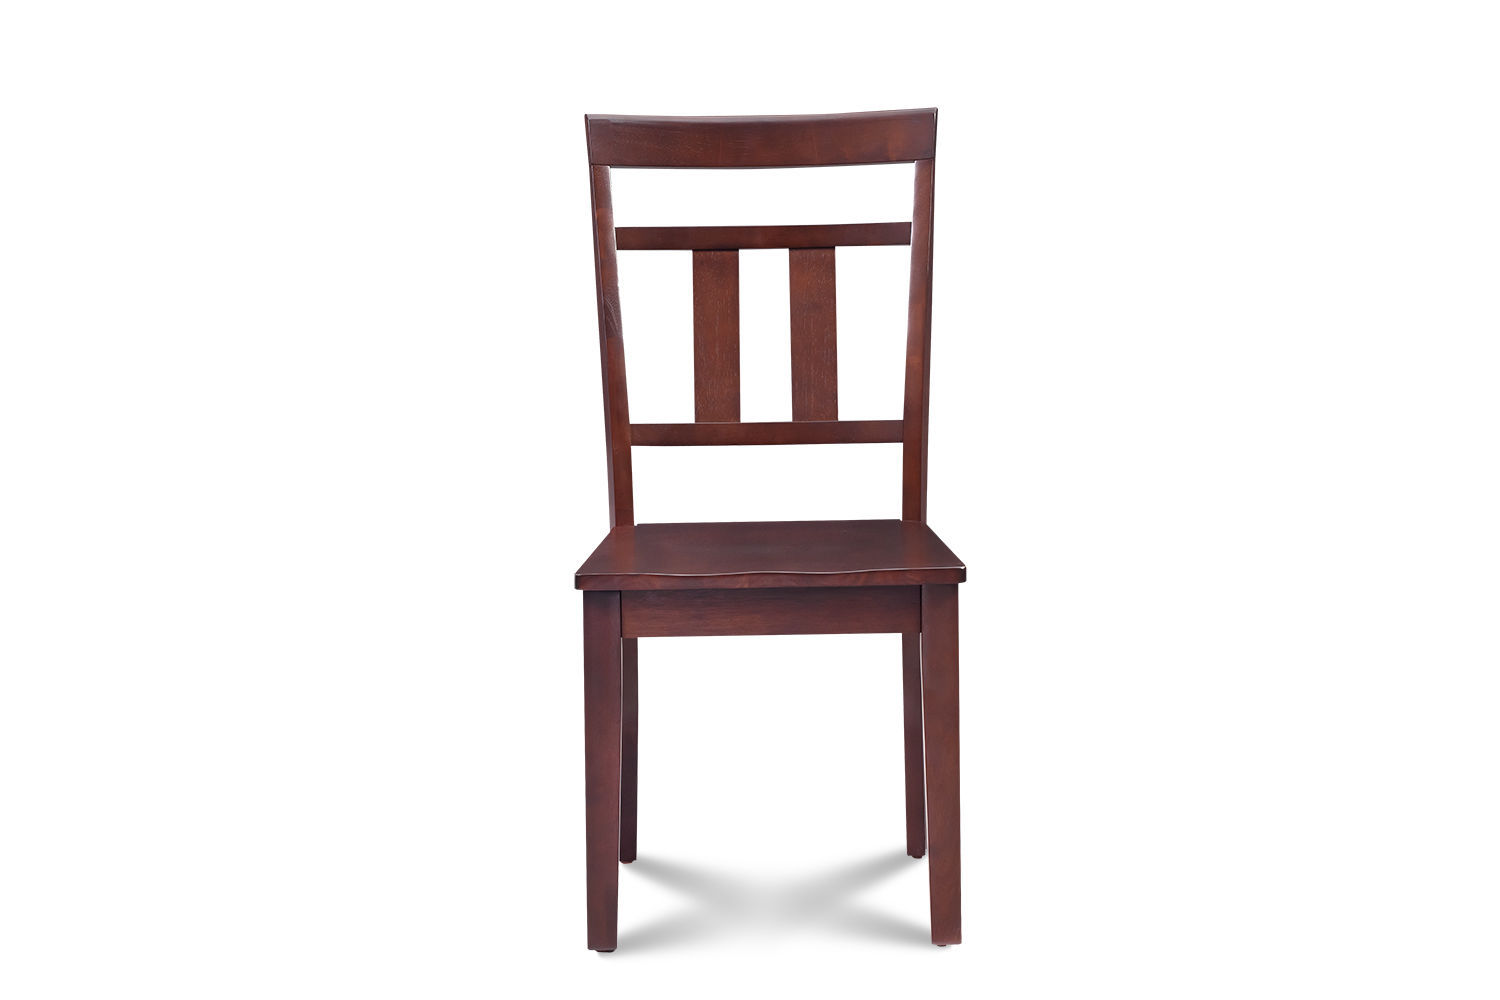 SET OF 2 KITCHEN DINING SIDE CHAIRS w/ WOODEN SEAT IN MAHOGANY FINISH